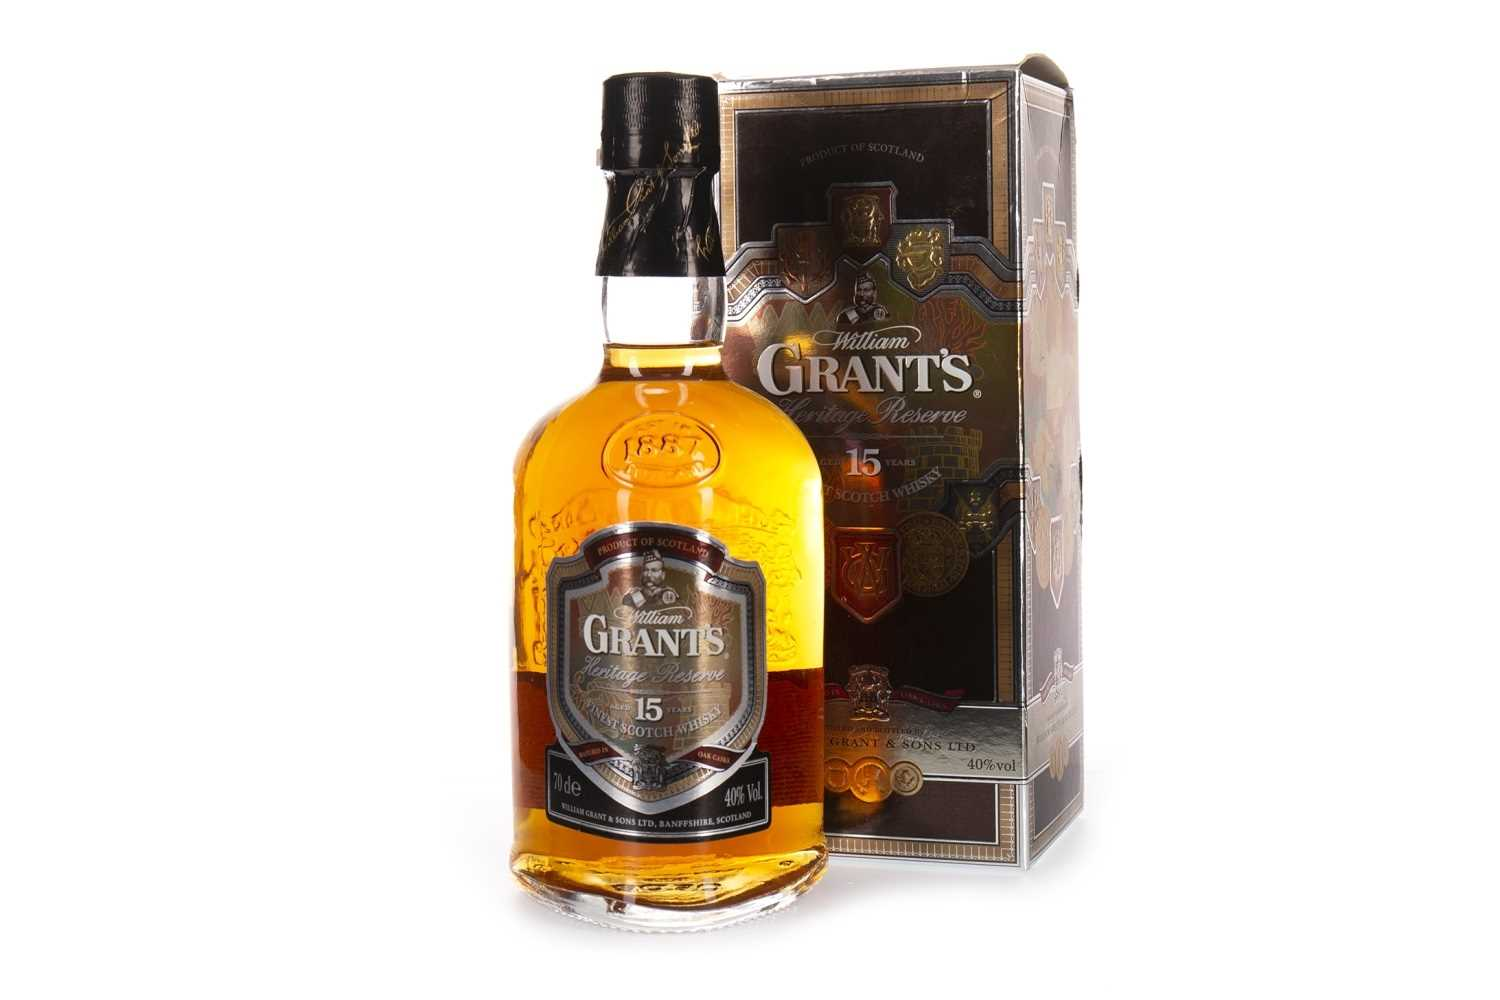 Lot 406-GRANTS 15 YEARS OLD